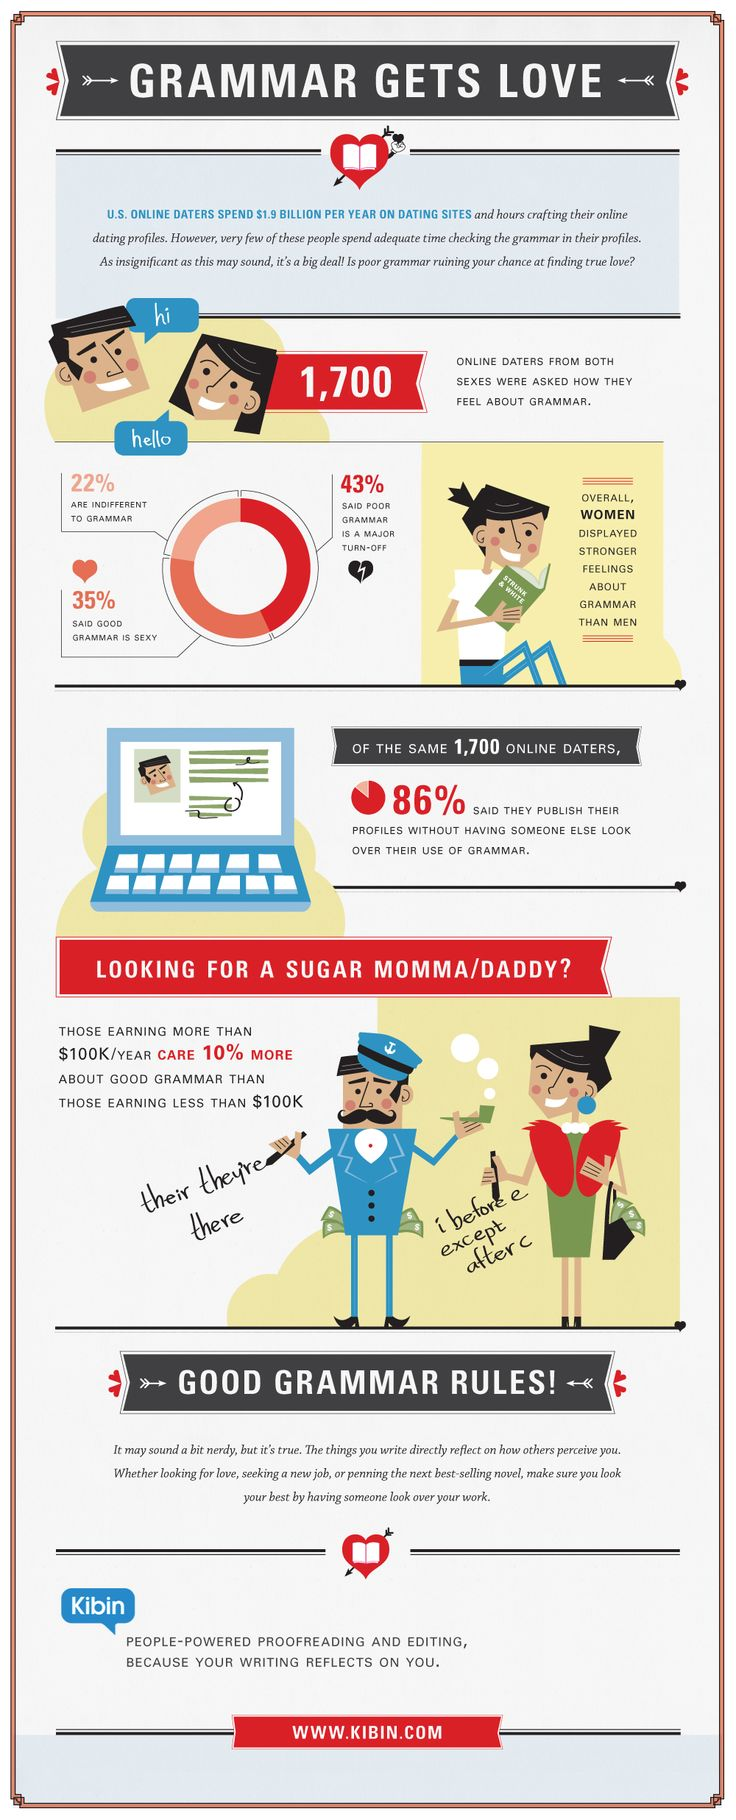 How Using Good Grammar Online Can Help You Find Love